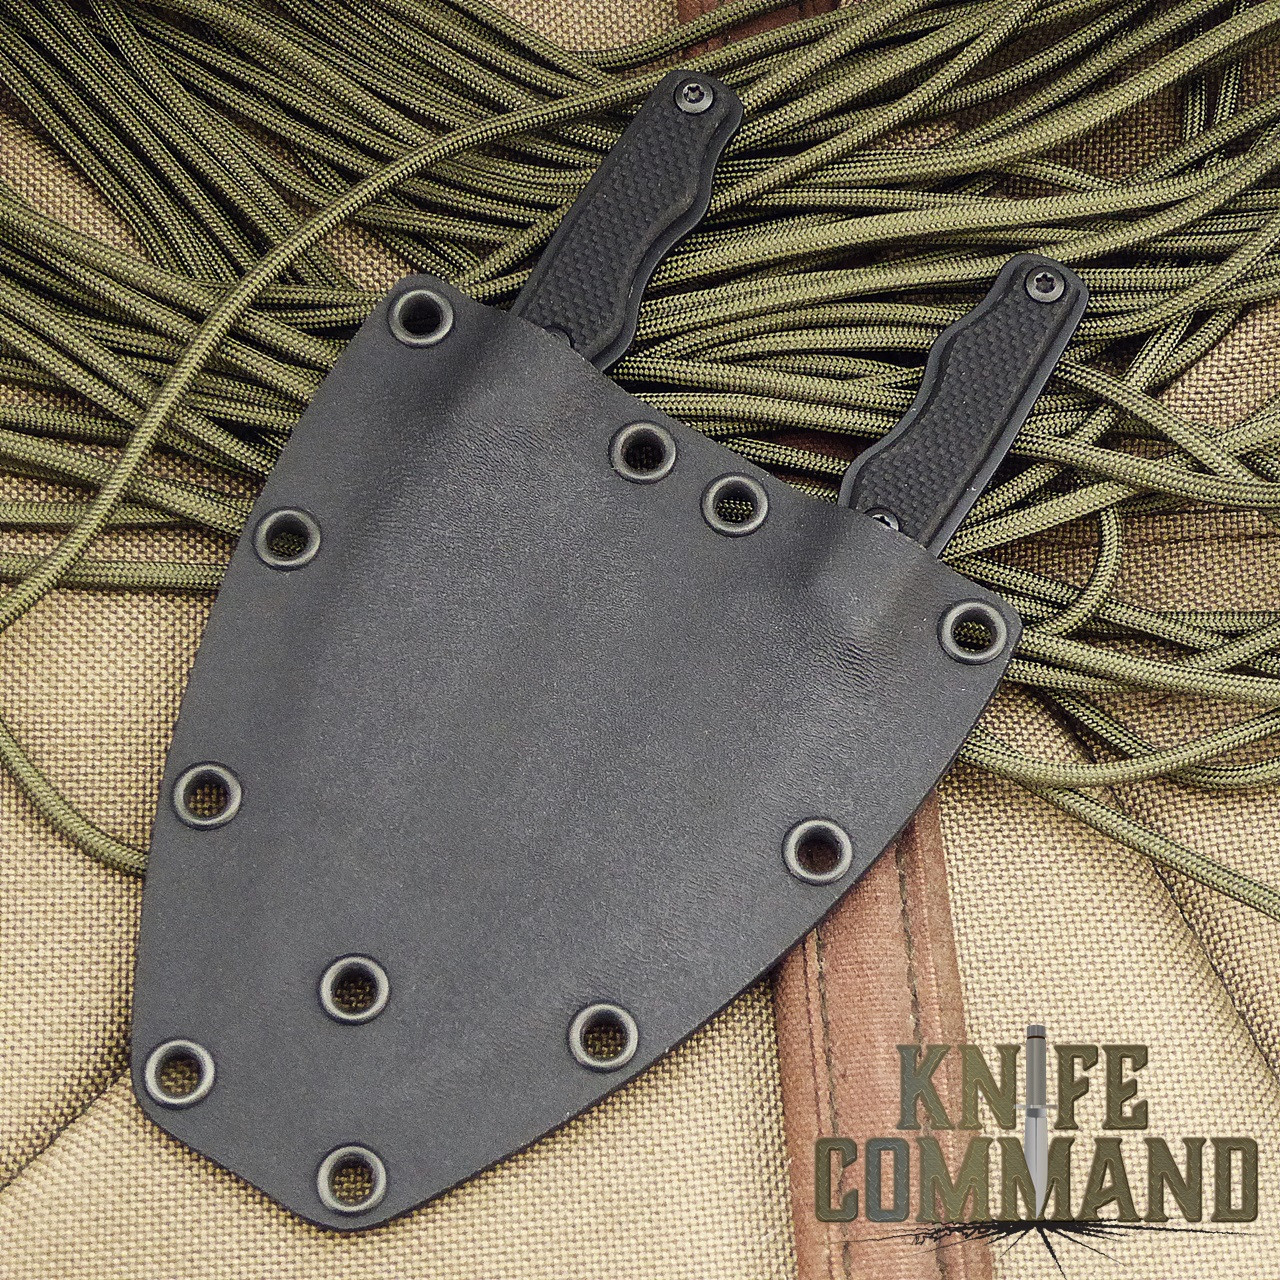 Eickhorn Solingen Eagle Claw Twin Neck Knife Set.  Two is better than one!